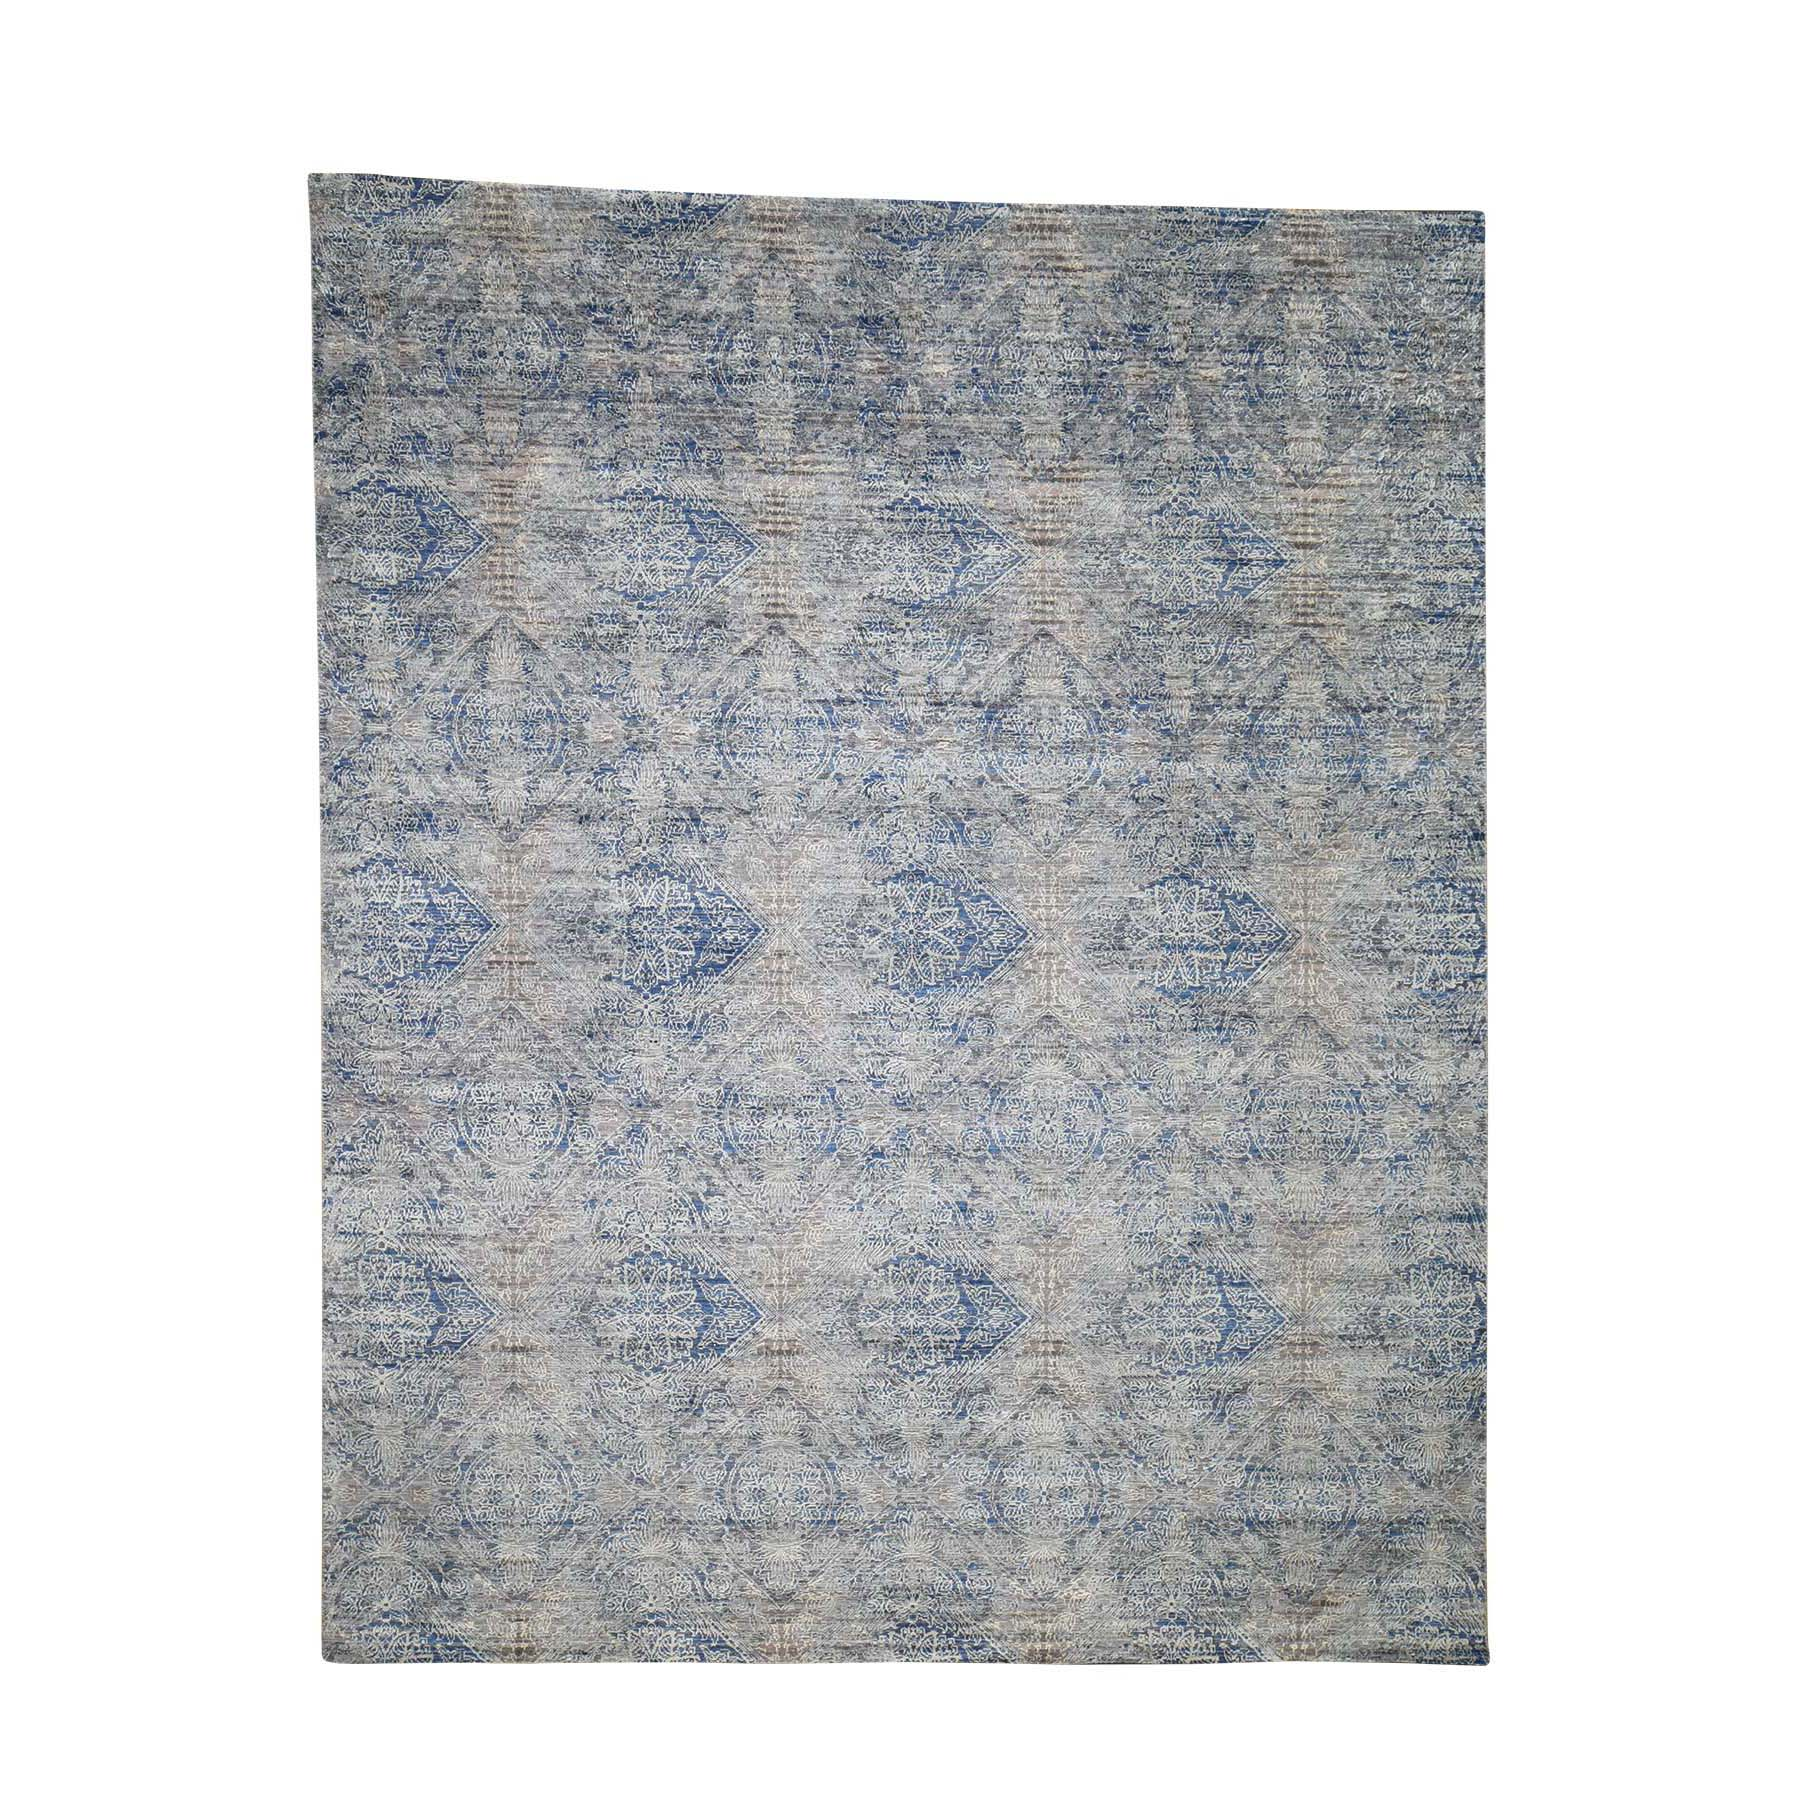 modern & contemporary rugs LUV398106